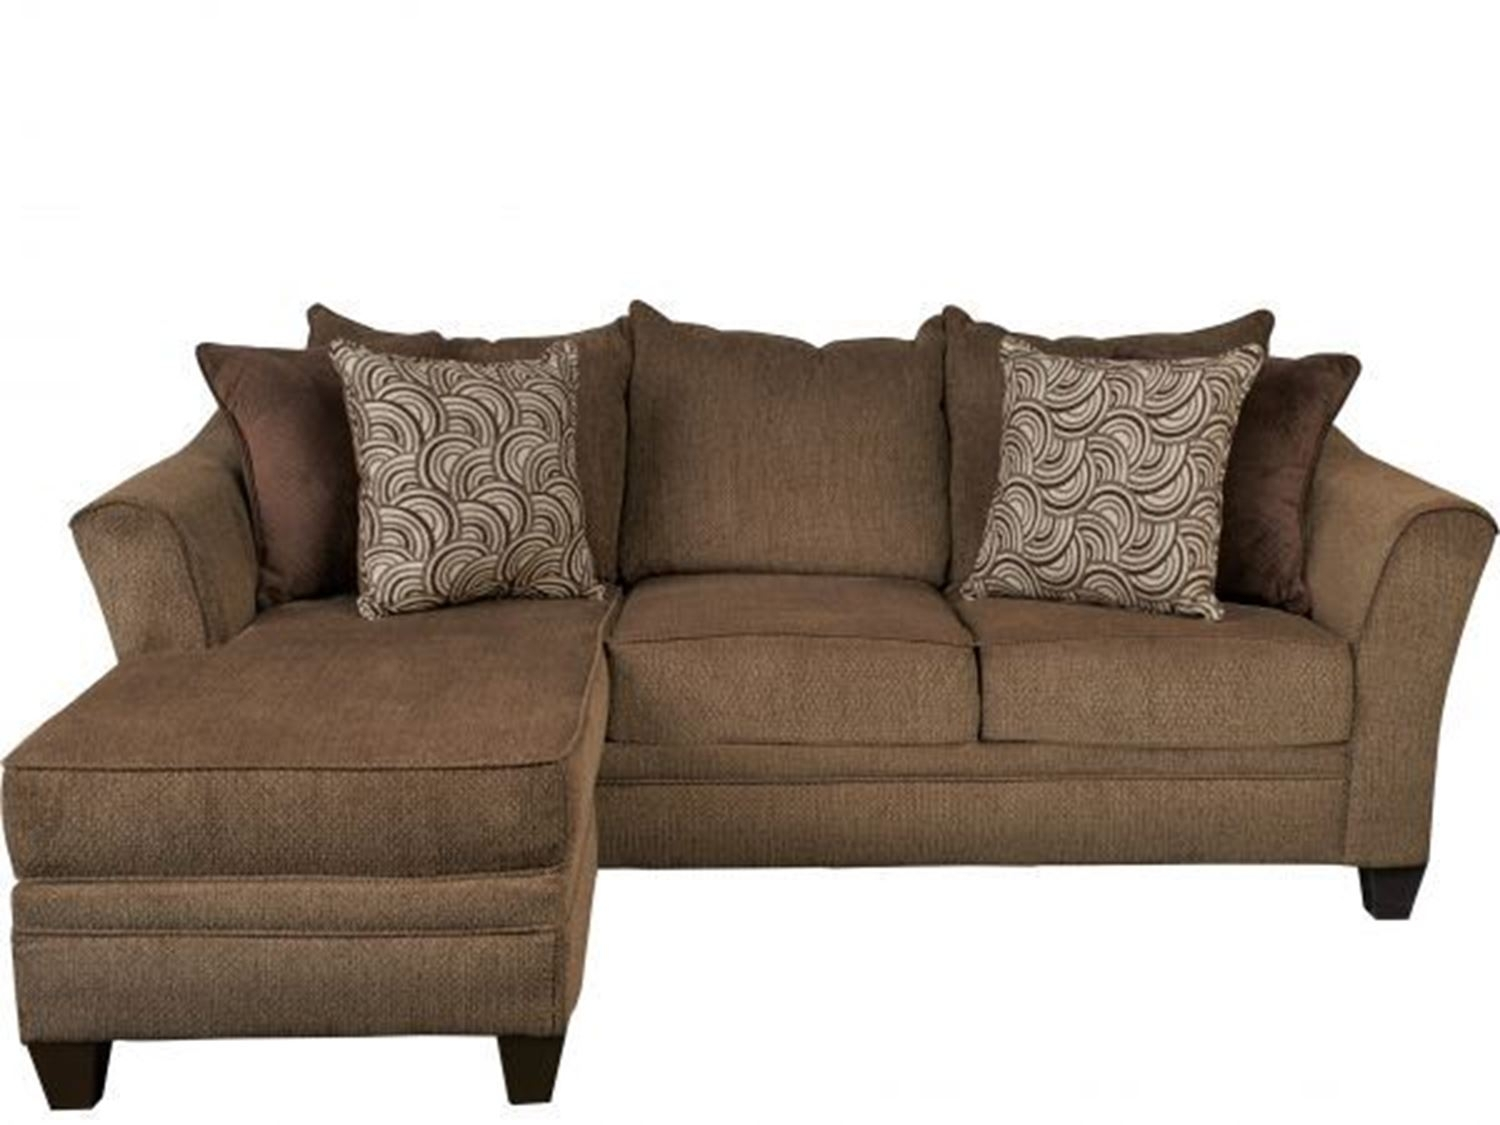 Zander Sofa Chaise | Walker Furniture Las Vegas pertaining to Collins Sofa Sectionals With Reversible Chaise